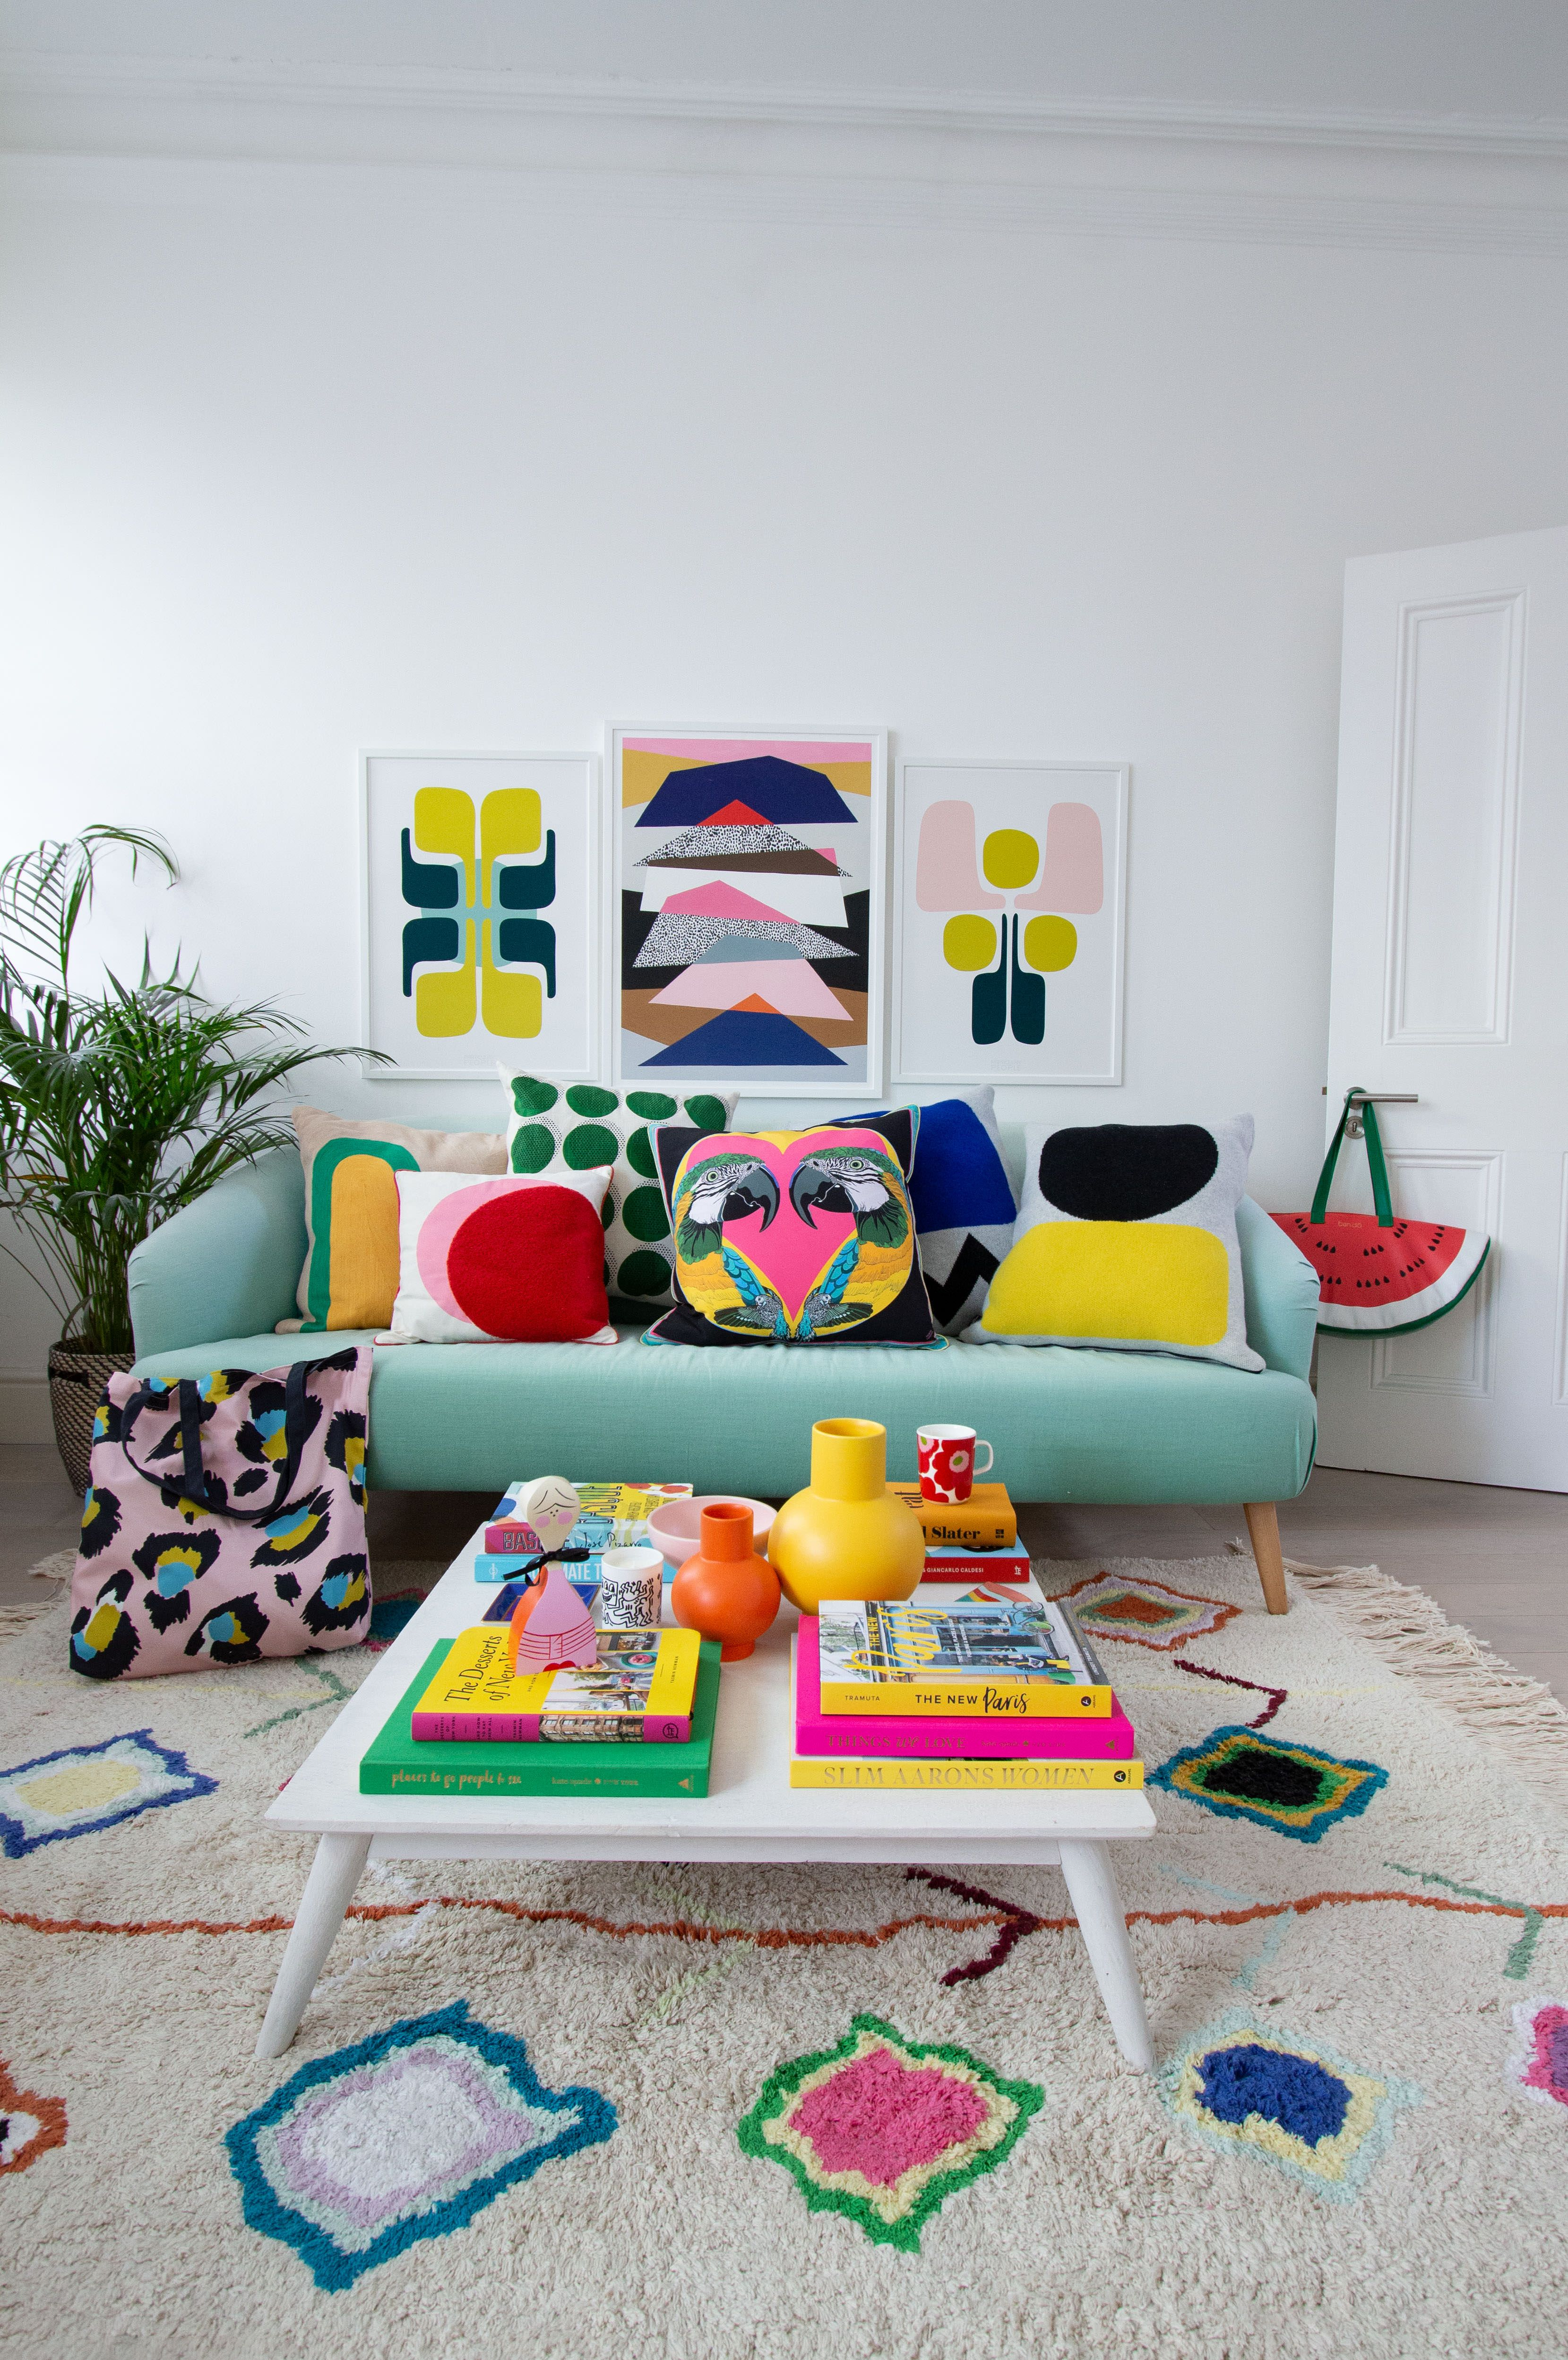 How to get a colourful retro 1980s Memphis trend look in your living room. - images